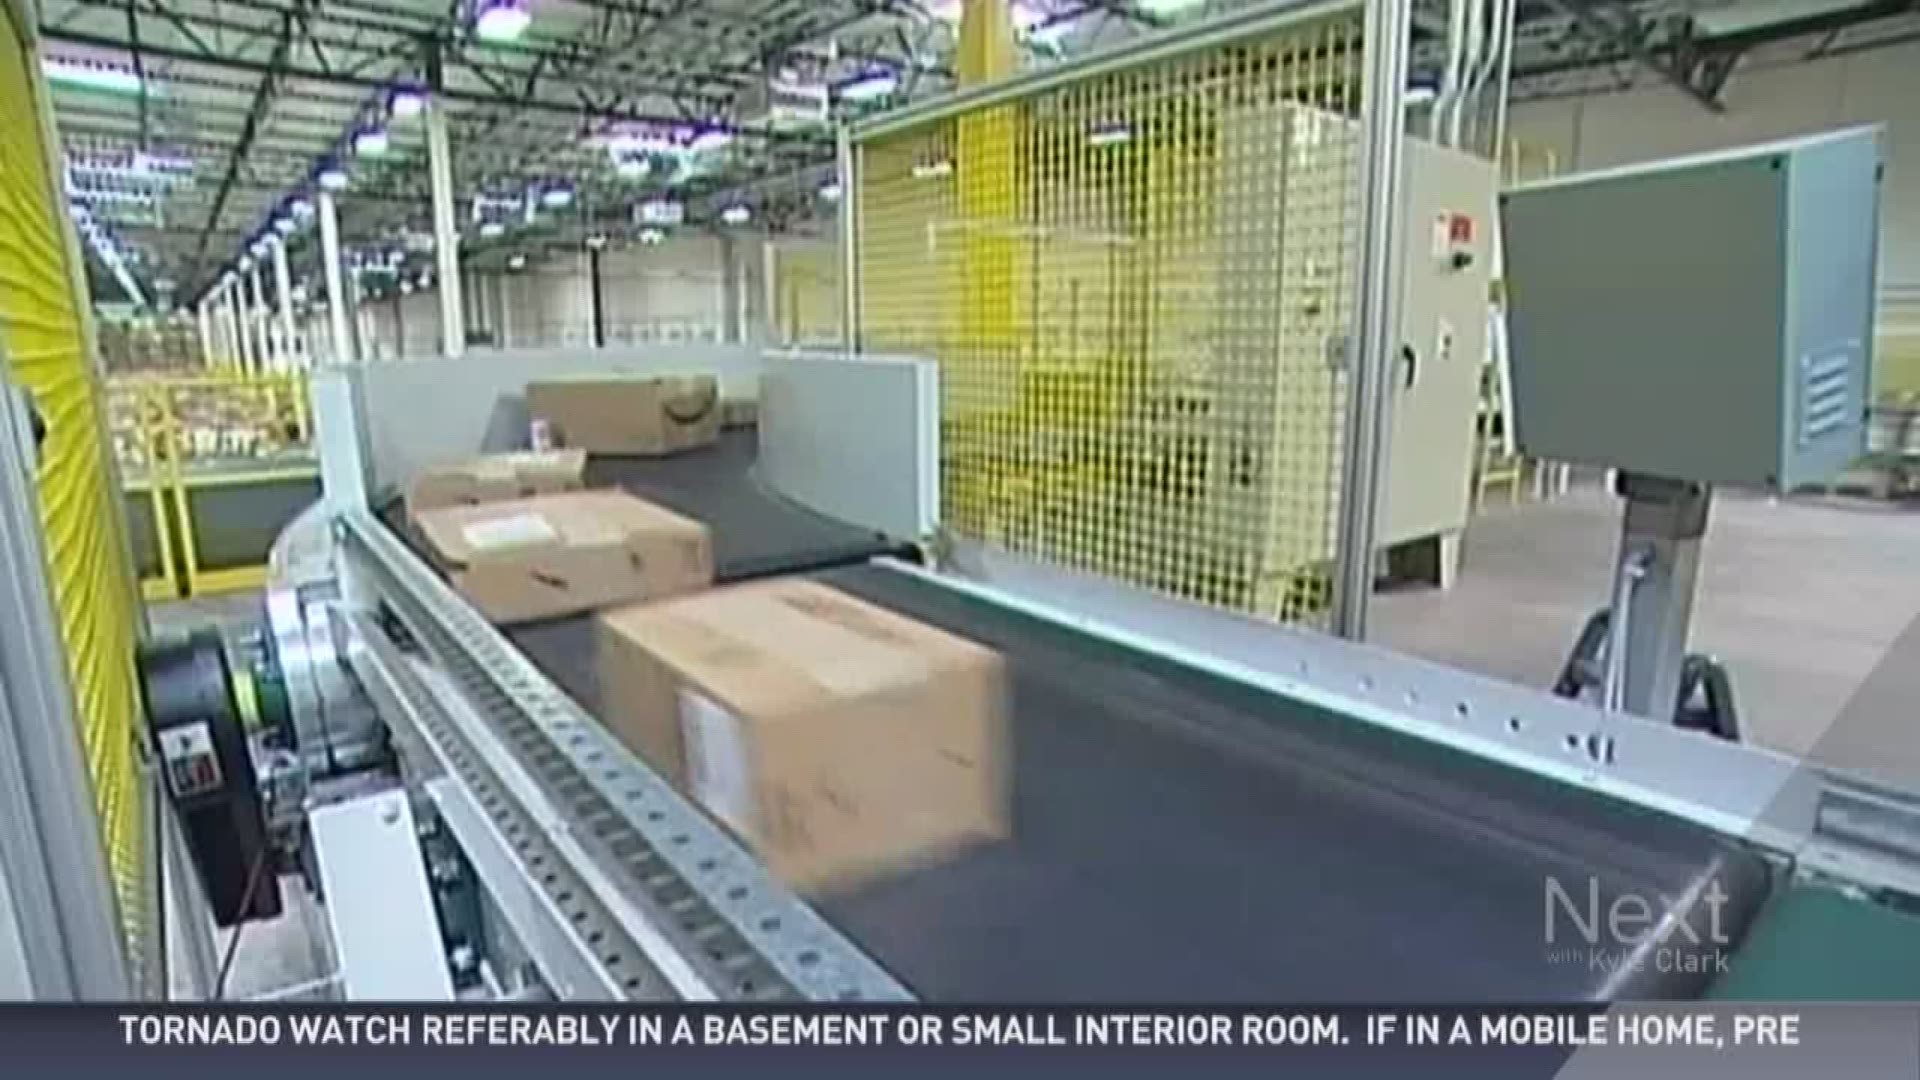 9 things to know about the amazon robotics facility coming to thornton 9news com big amazon center opening in thornton